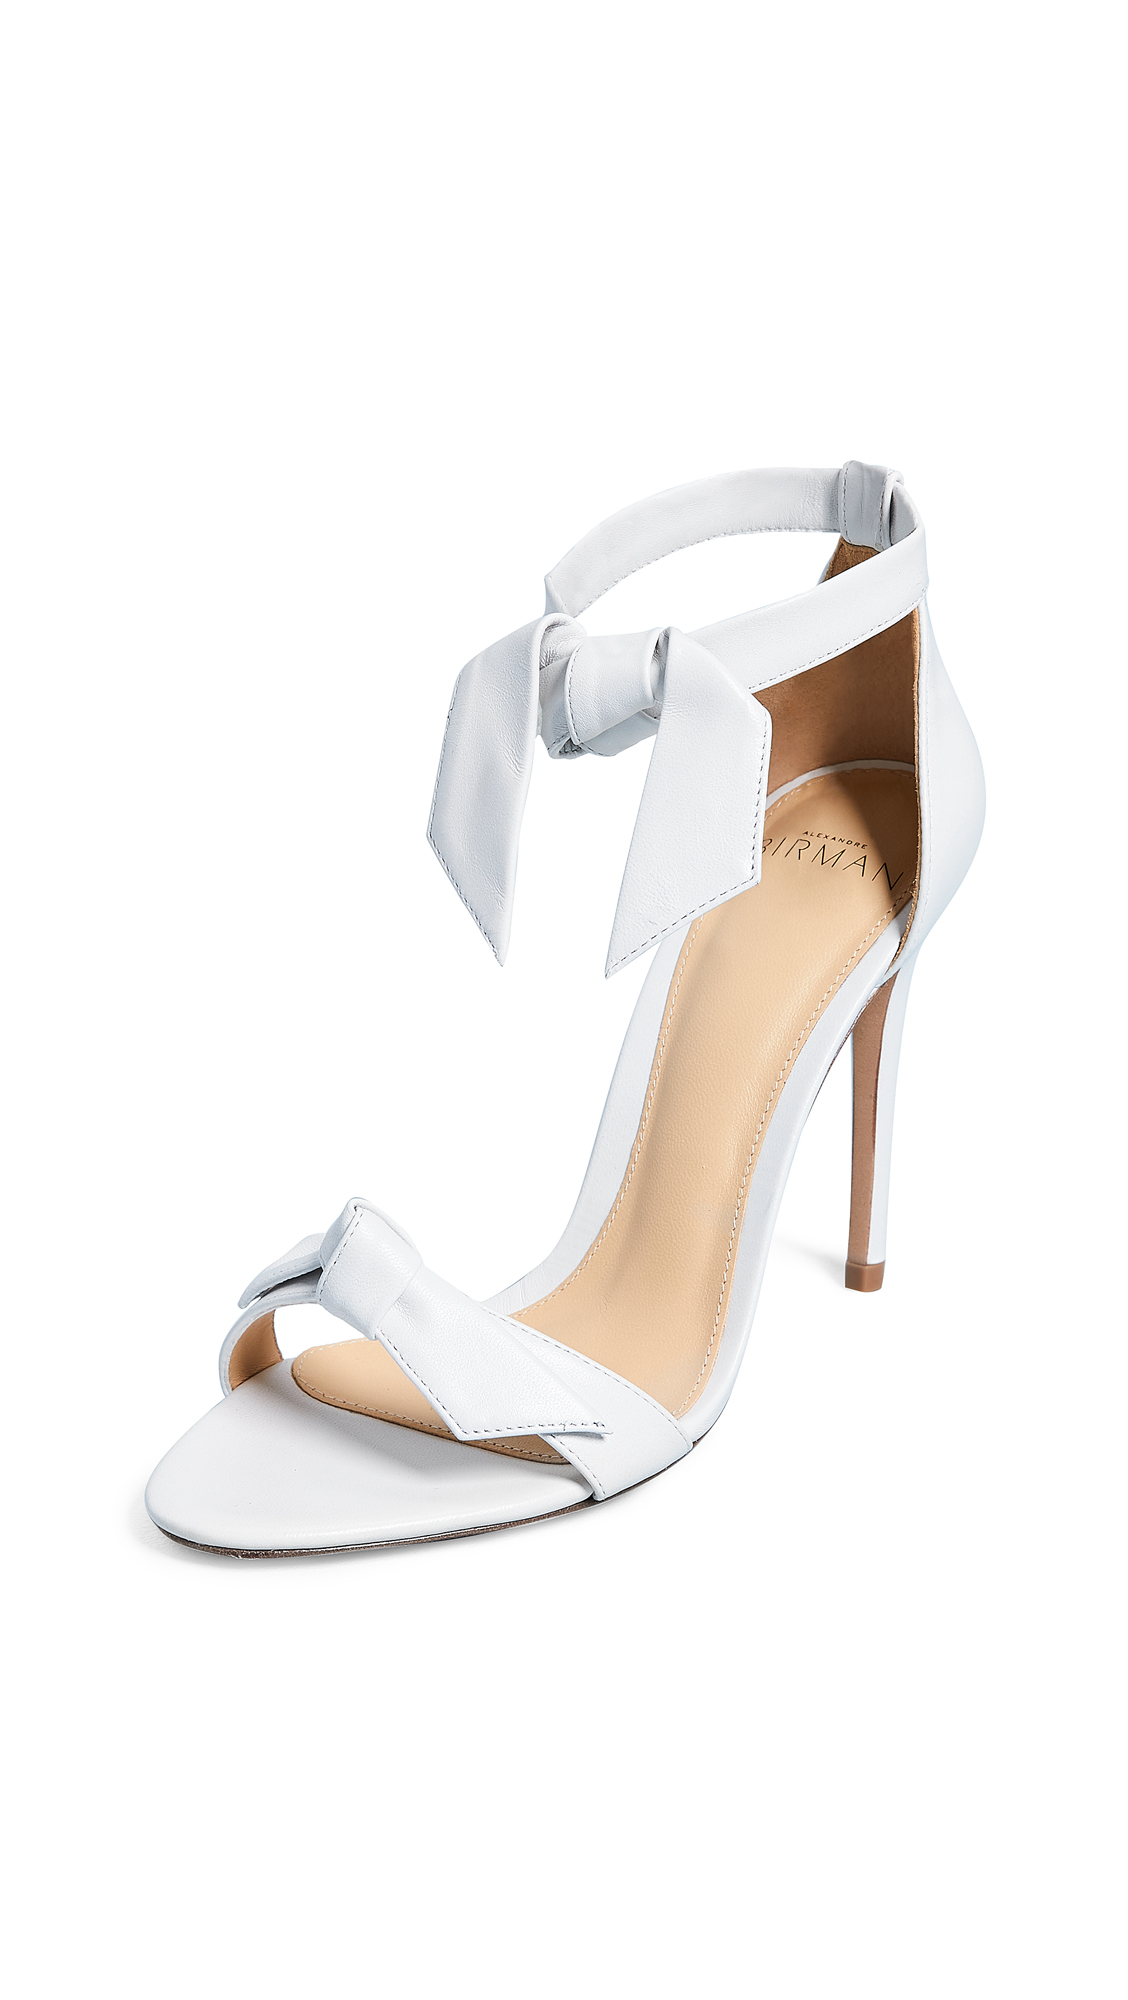 Alexandre Birman Clarita Sandals - White